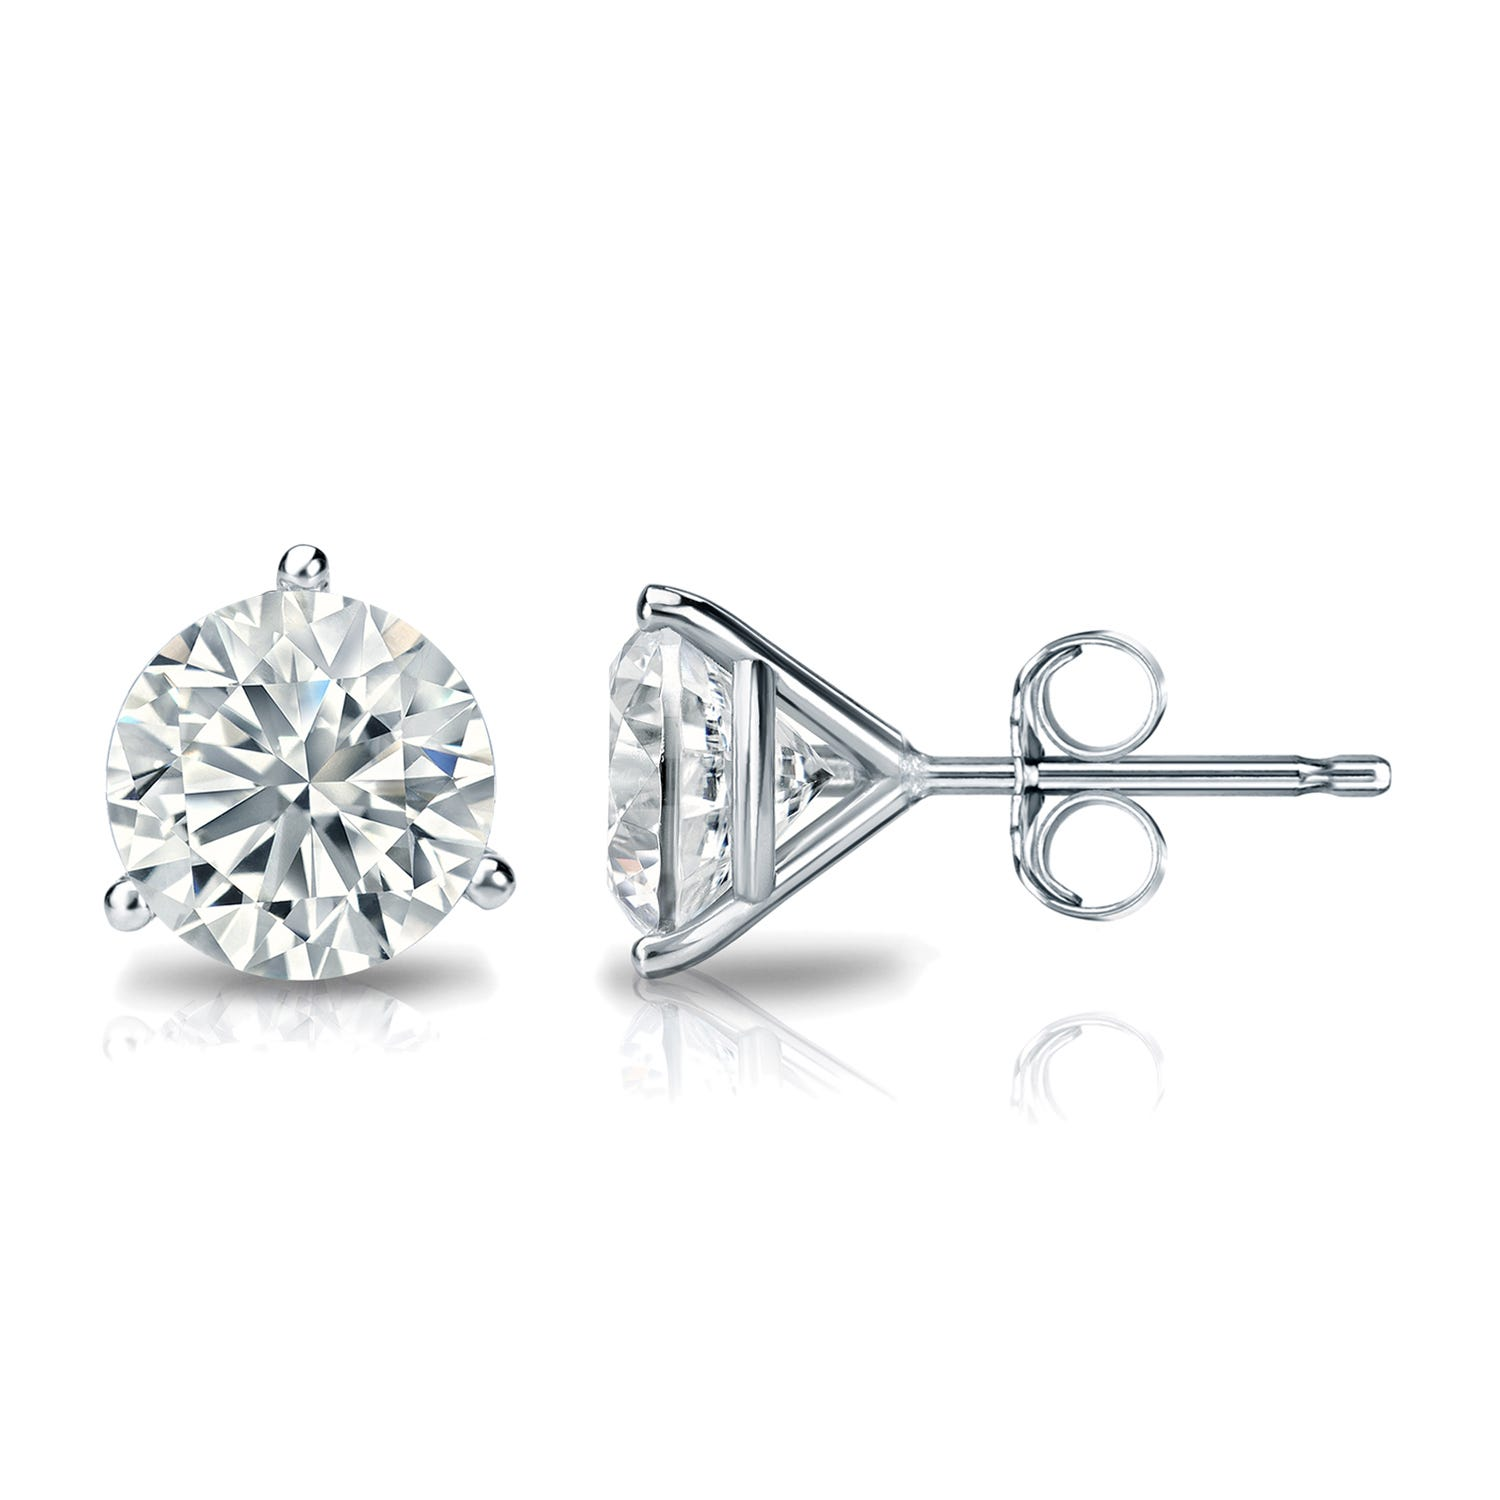 1-1/2 CTTW Round Diamond Solitaire Stud Earrings IJ SI2 in Platinum IGI Certified 3-Prong Setting